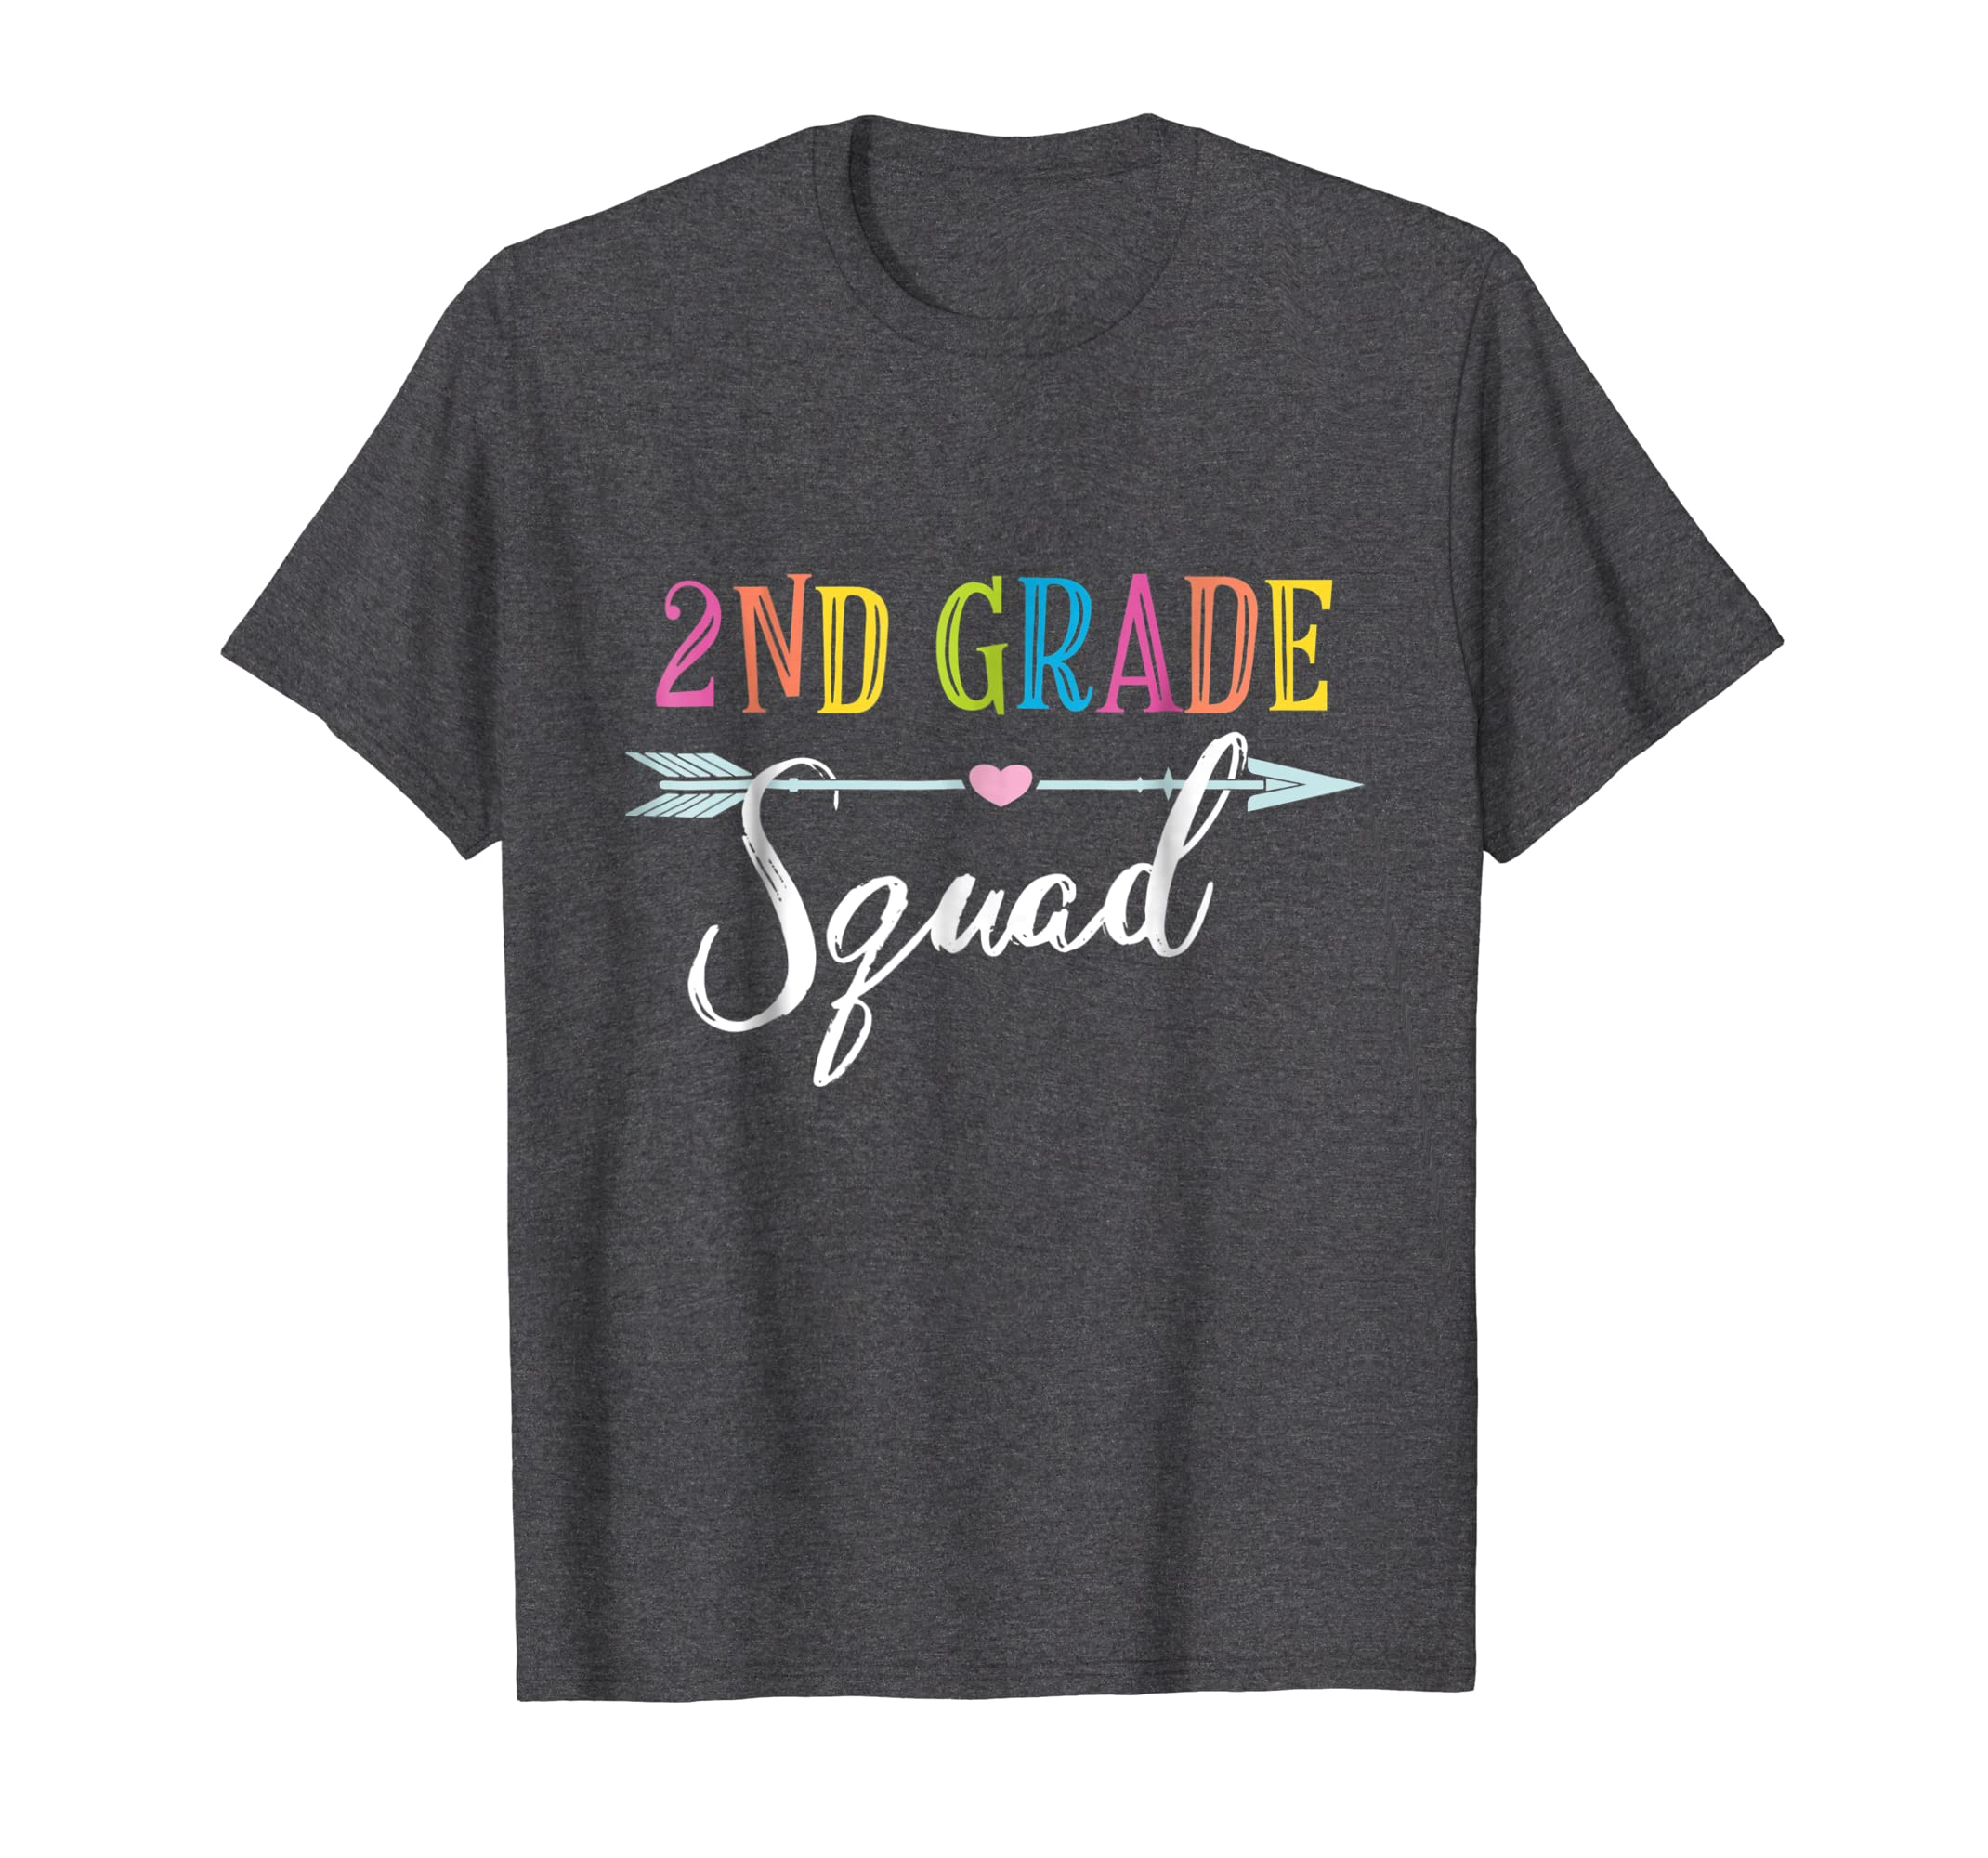 2nd Grade Squad  Second Grade Shirt For Kids & Teachers-Awarplus